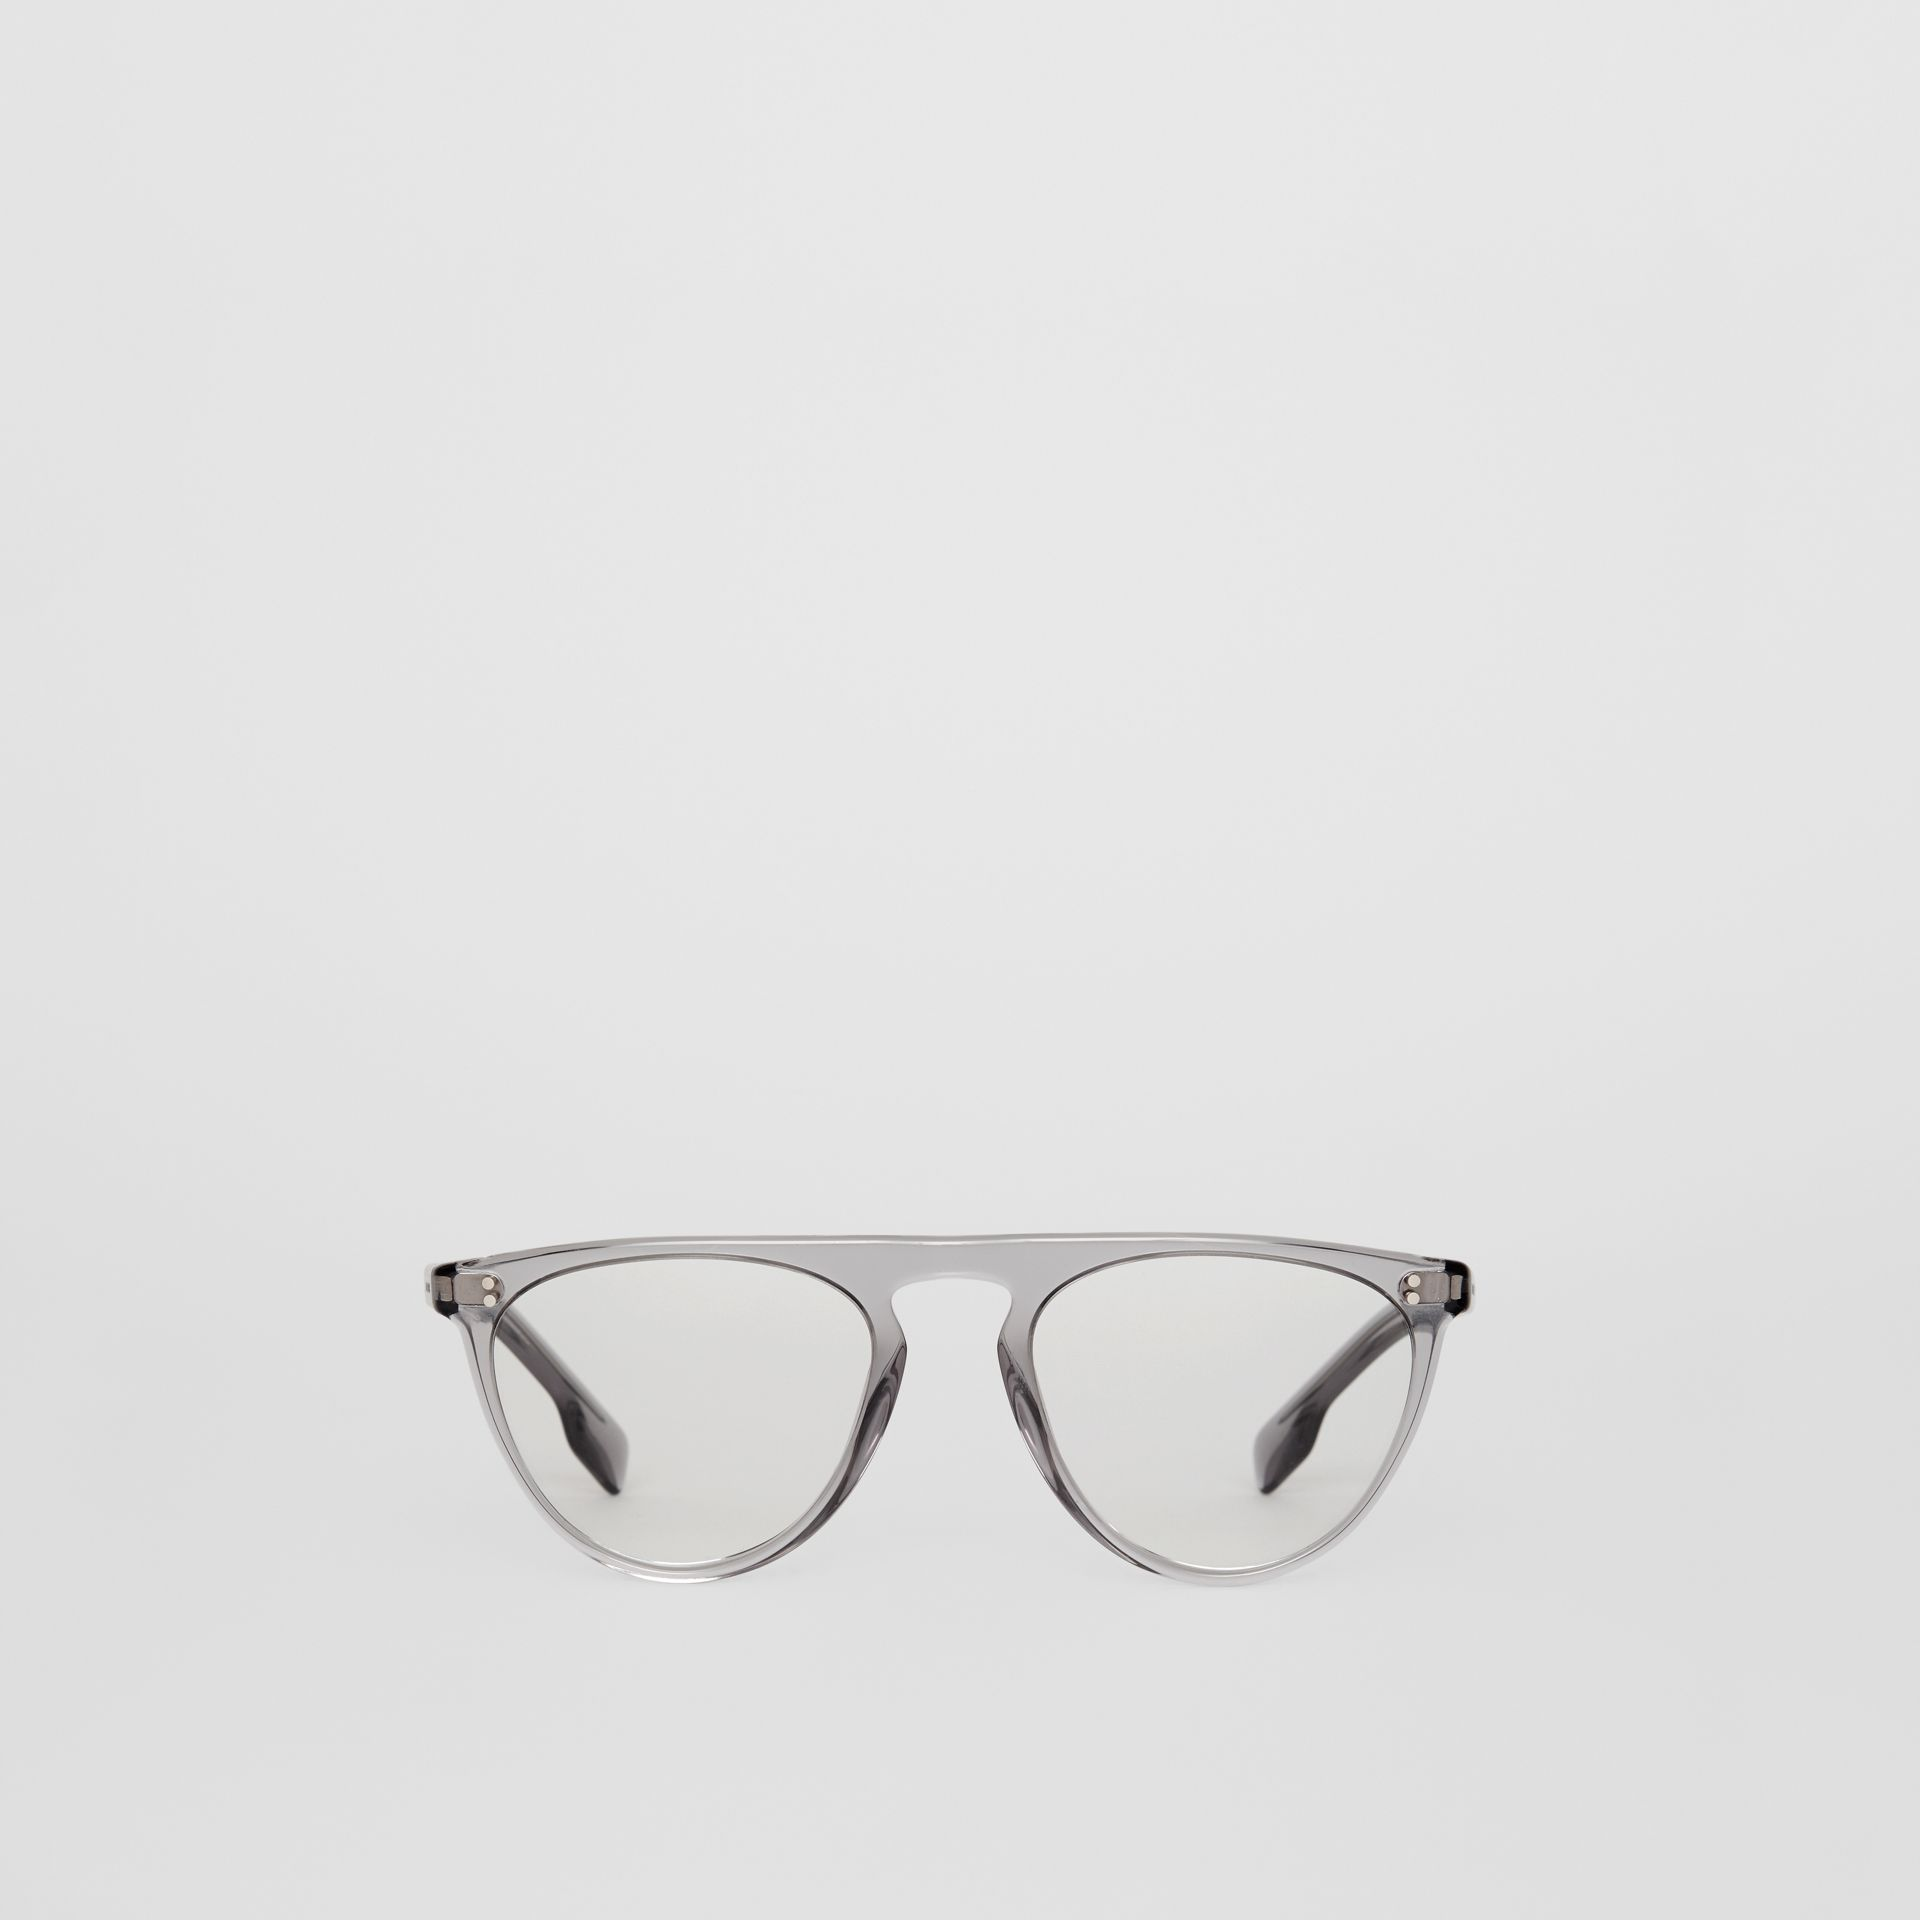 Keyhole D-shaped Optical Frames in Grey - Men | Burberry Australia - gallery image 0